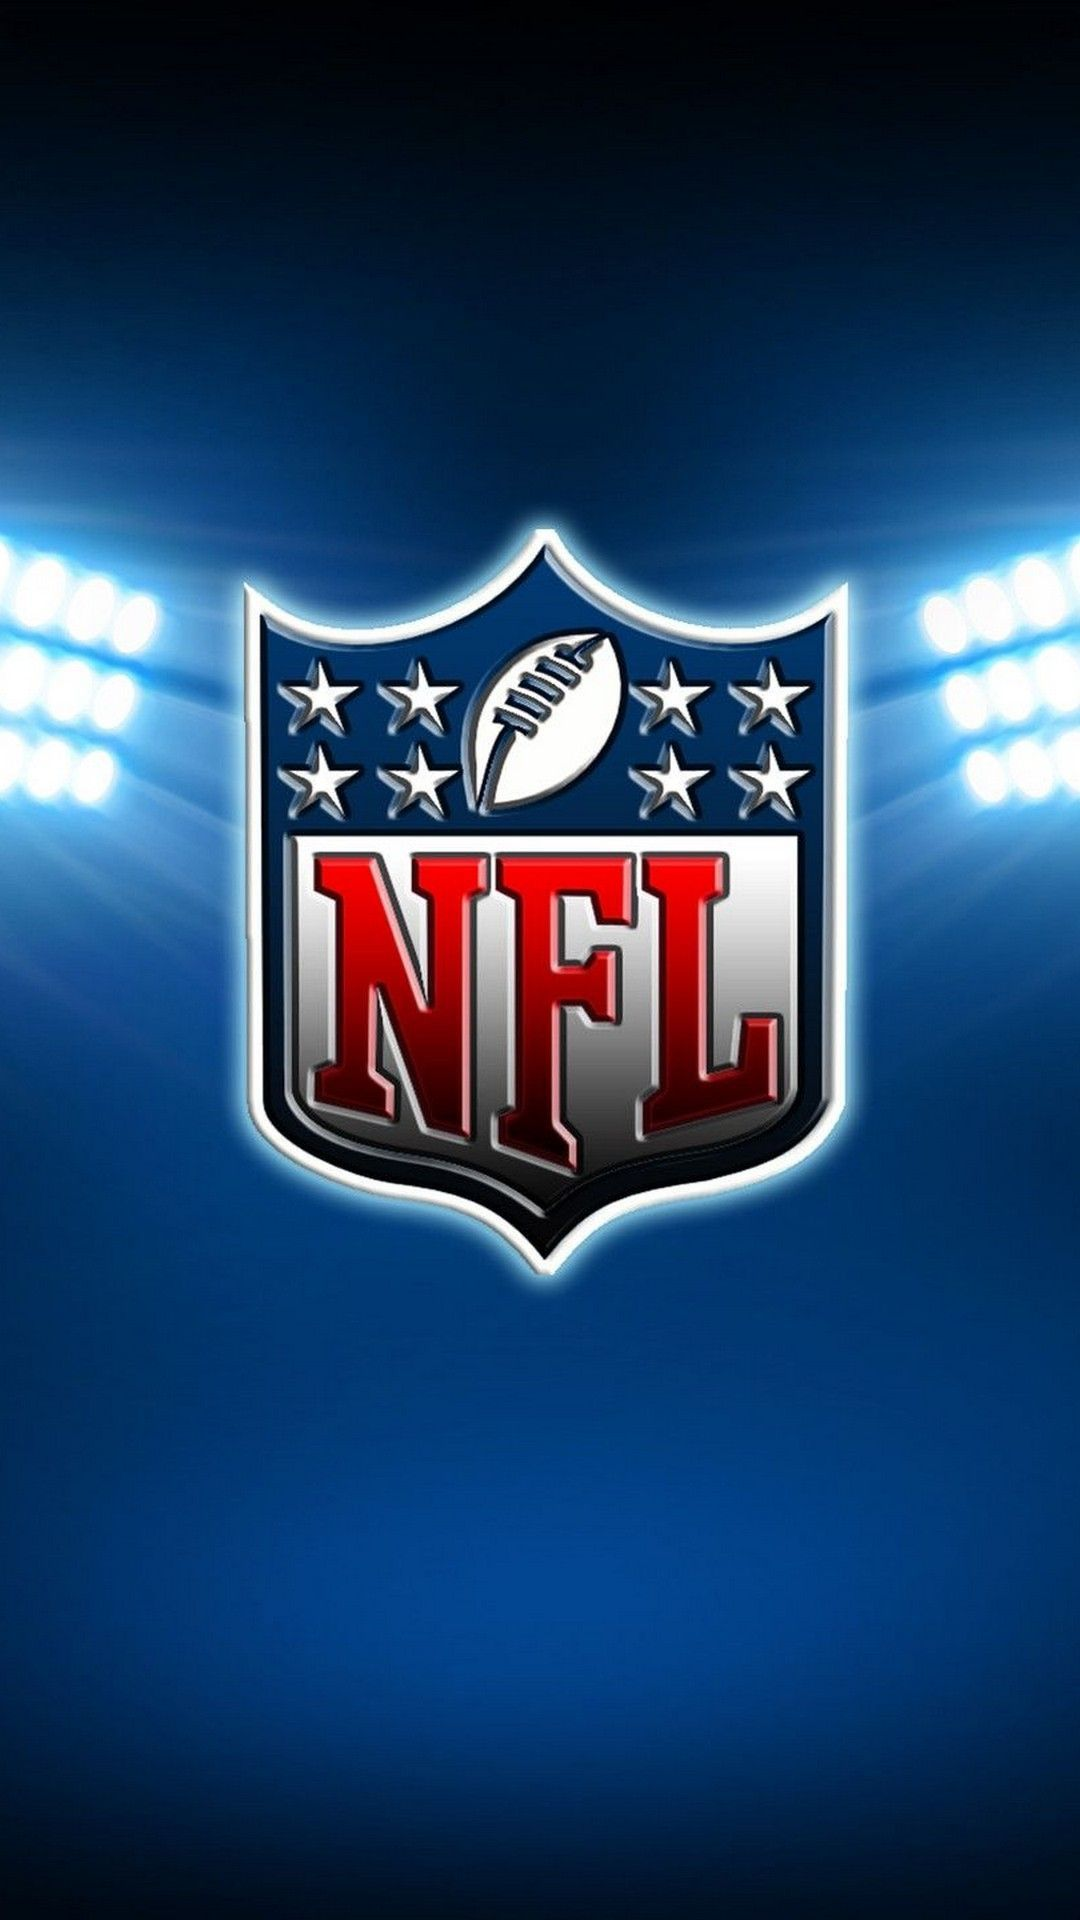 Girly 49ers Wallpaper Android Download In 2020 Football Wallpaper Nfl Football Wallpaper Alabama Wallpaper